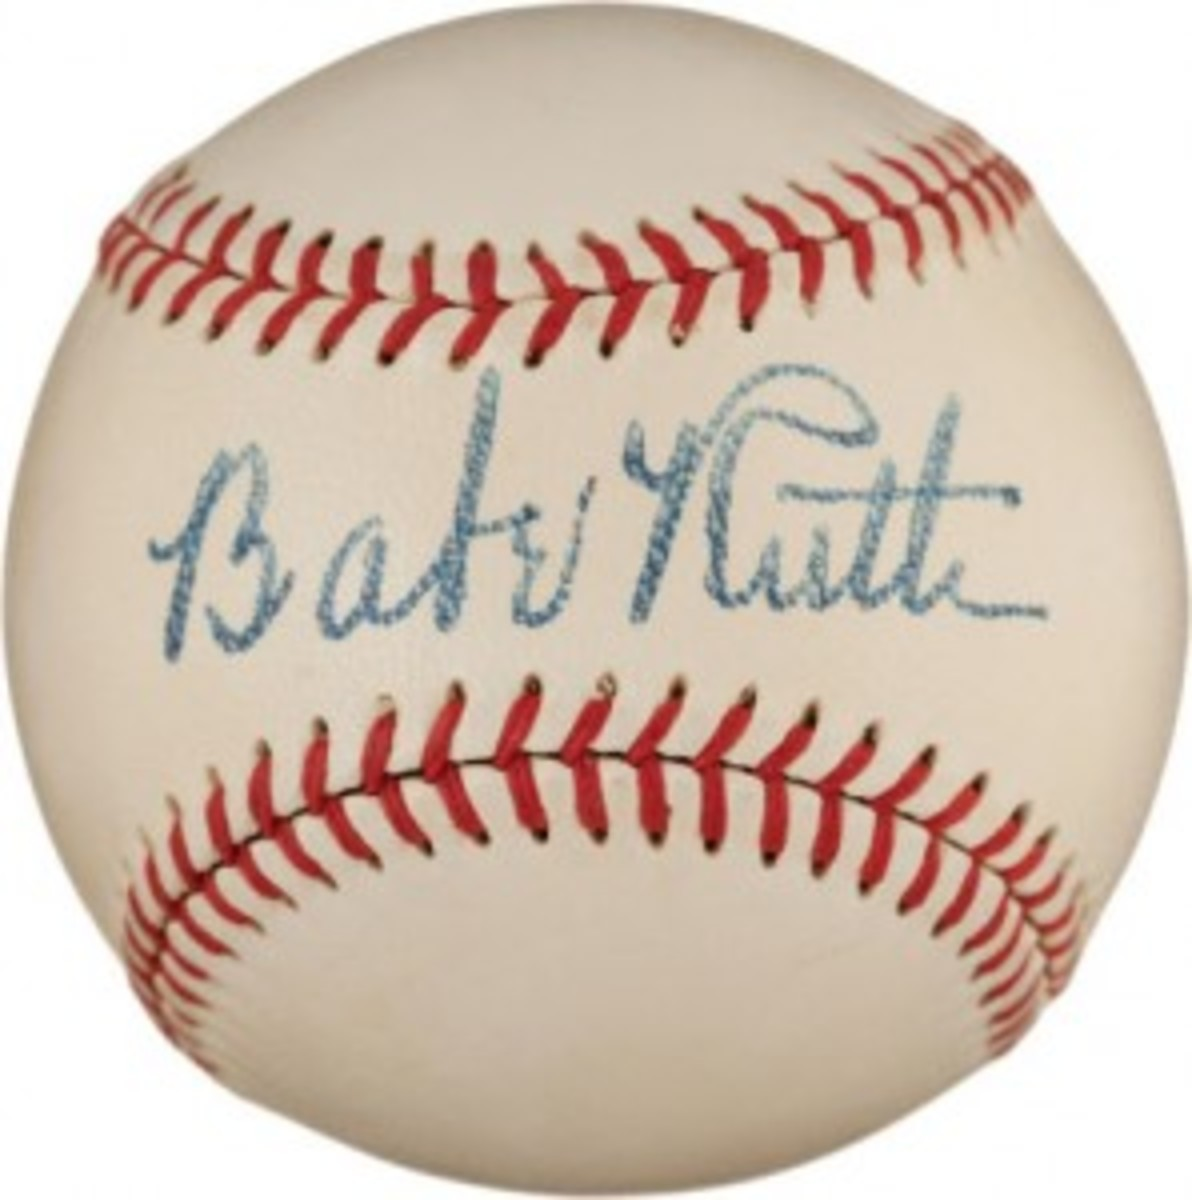 Finest known Babe Ruth single-signed ball, estimated at $300,000+